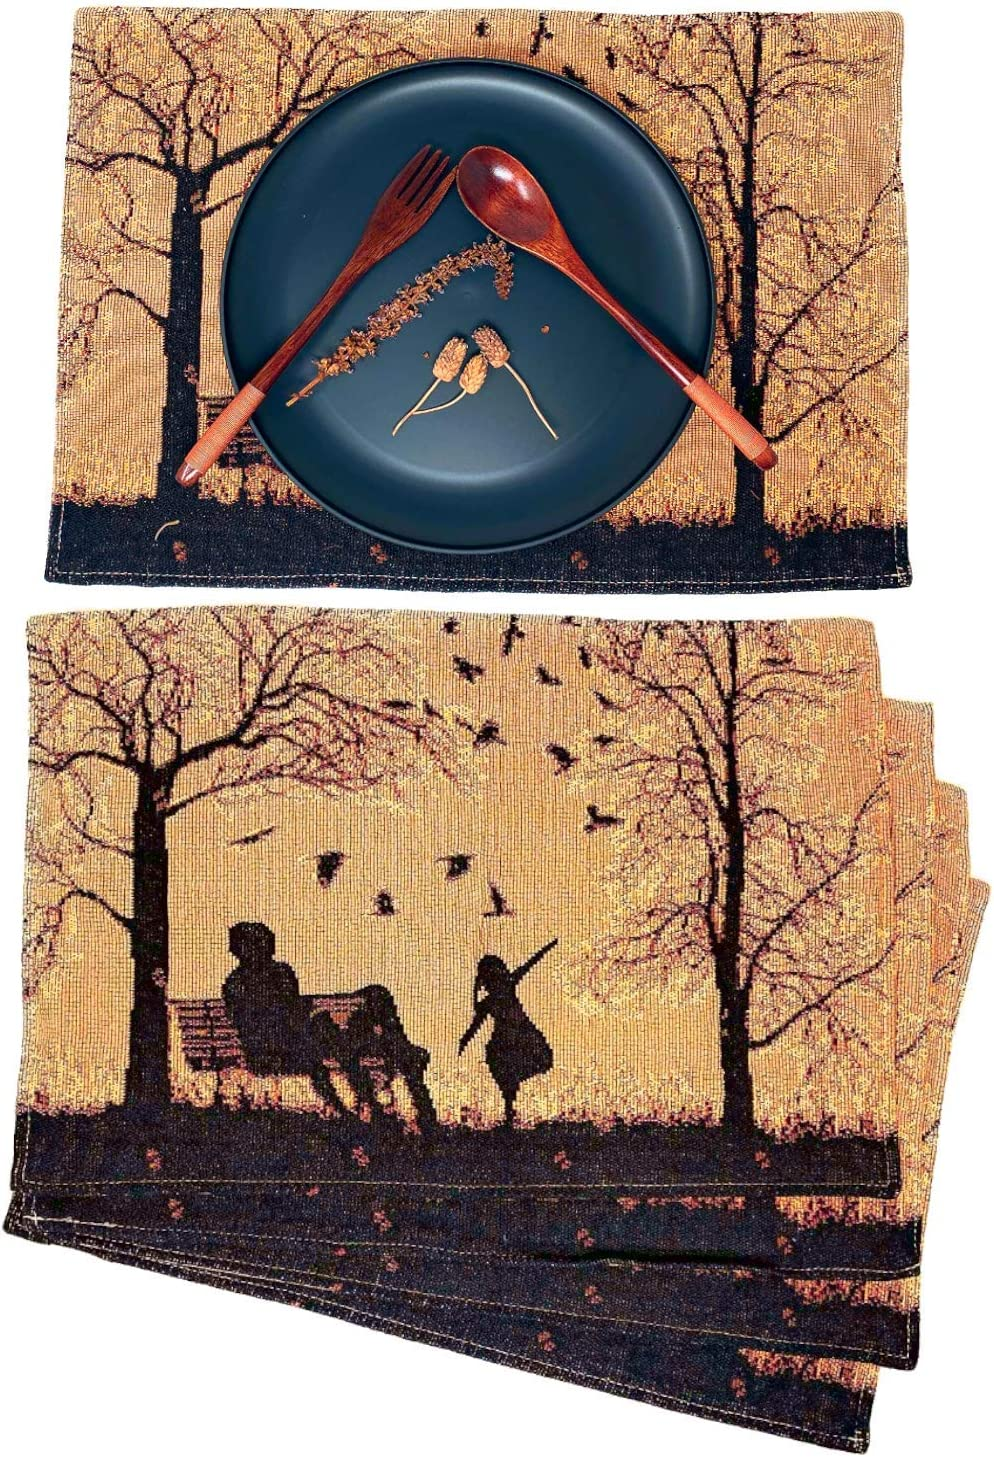 """DaDa Autumn Breeze Placemats - Set of 4 Tapestry Woven Cotton Linen Dining Table Mats Fall Decor - Family Cozy Blessing Gathering Together for Daughters Orange Tan Black Decorative - 13"""" x 19"""""""